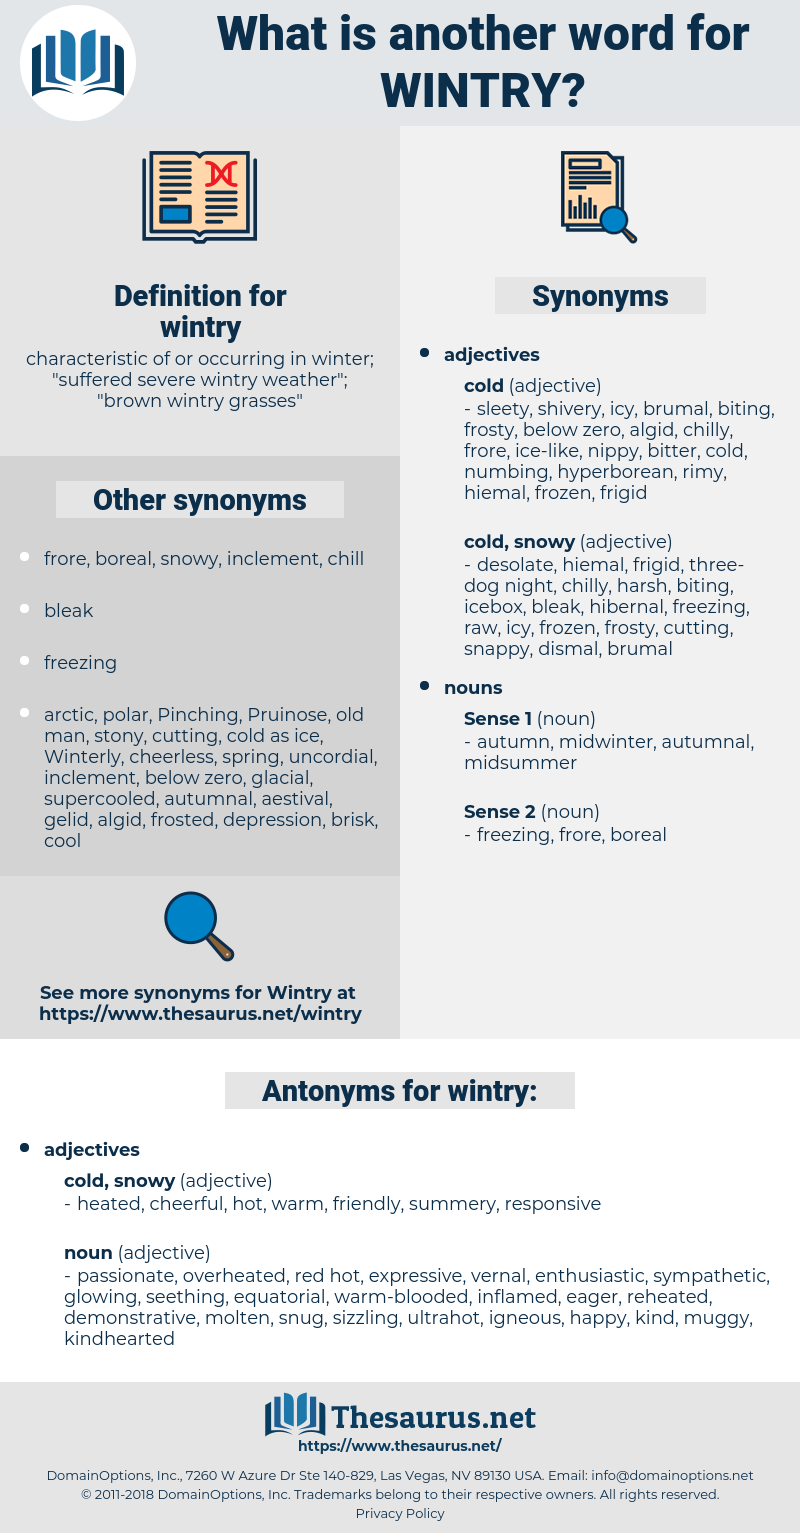 wintry, synonym wintry, another word for wintry, words like wintry, thesaurus wintry